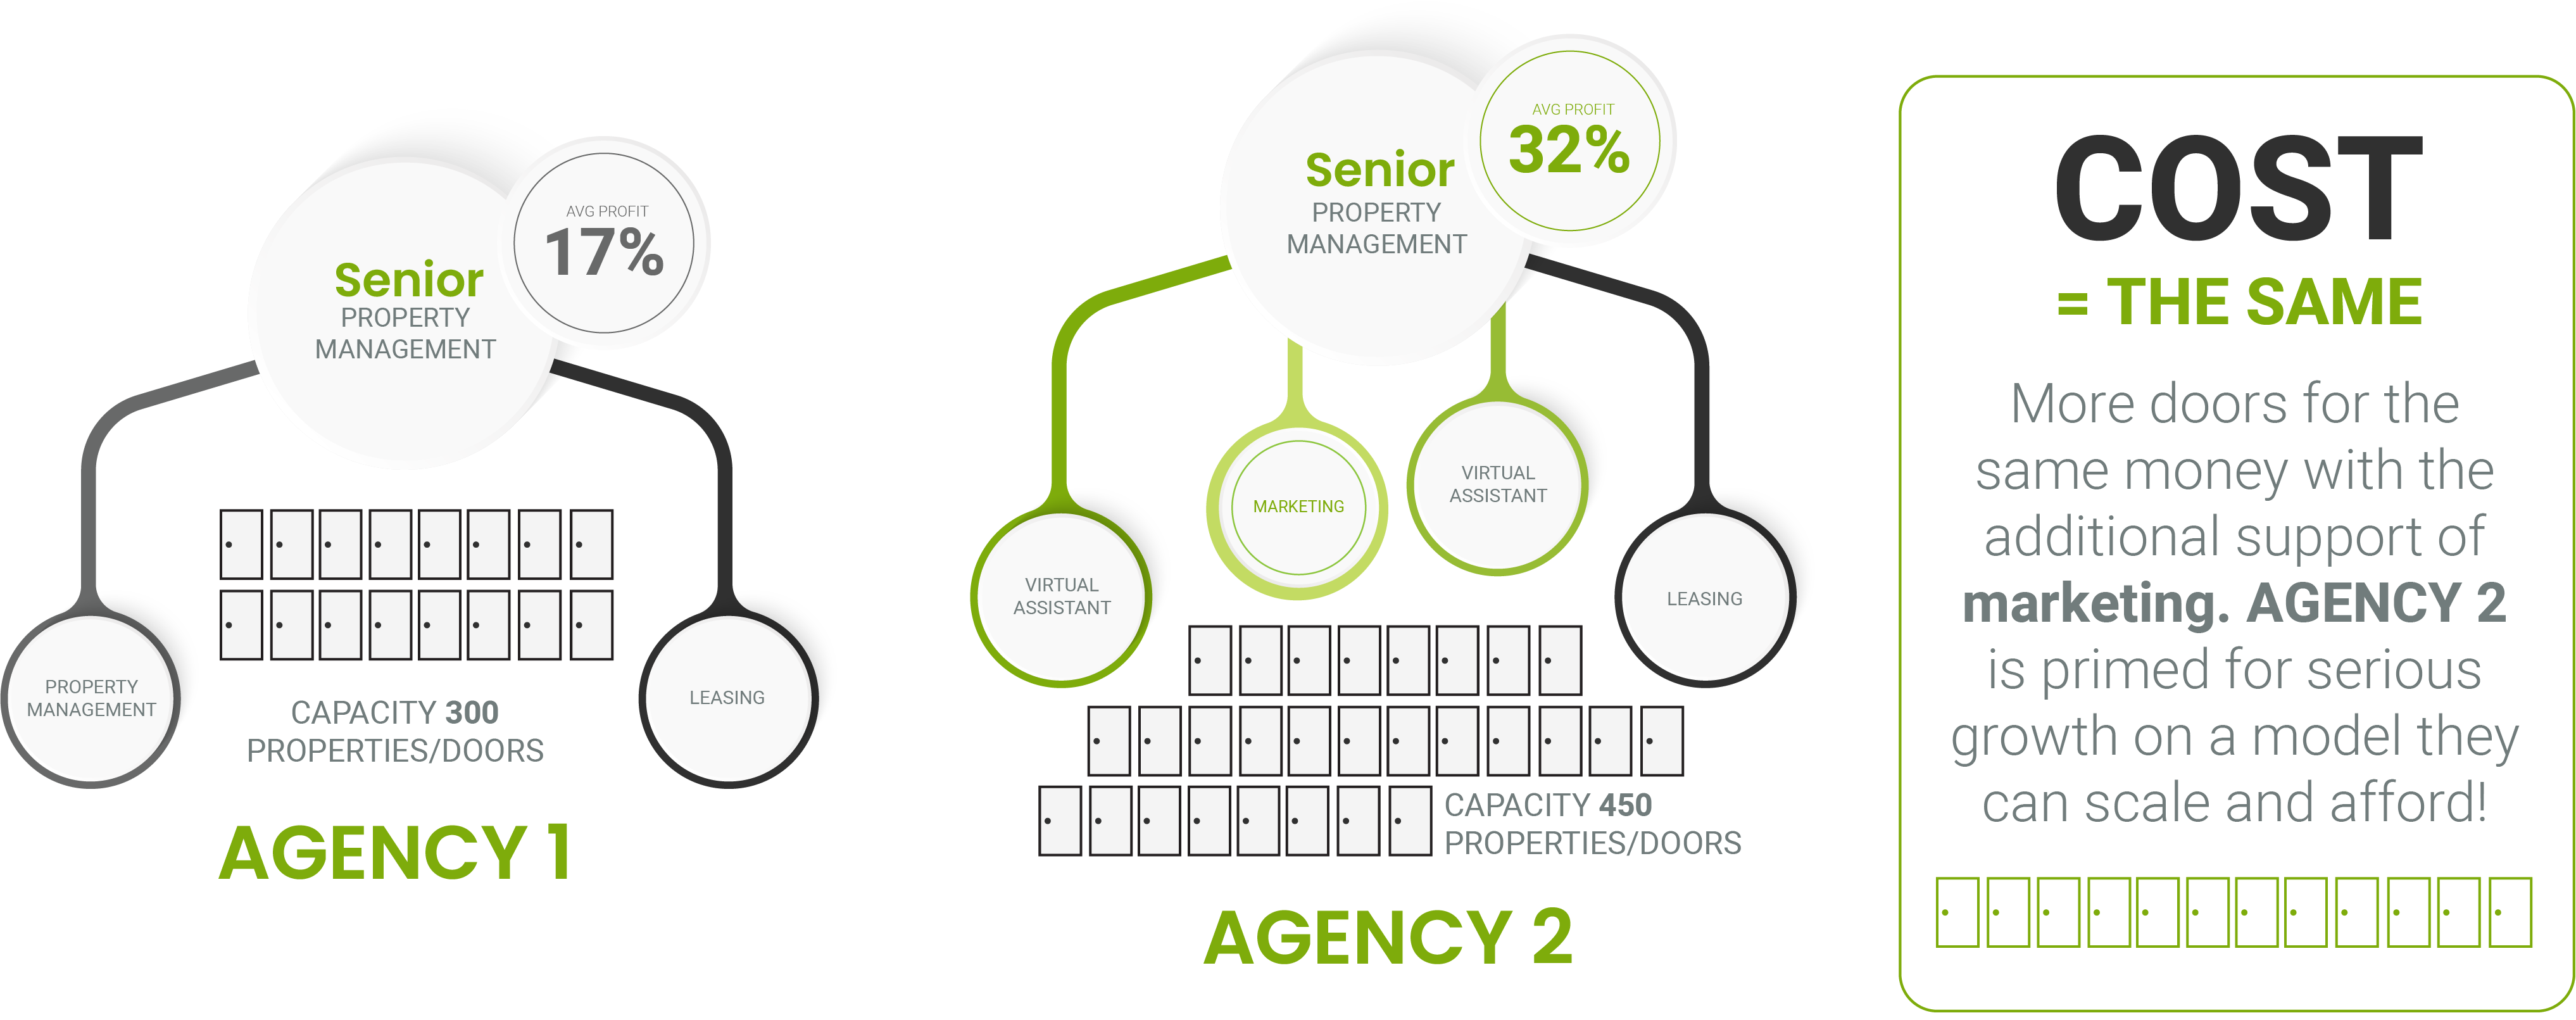 Senior property management with a real estate virtual assistant